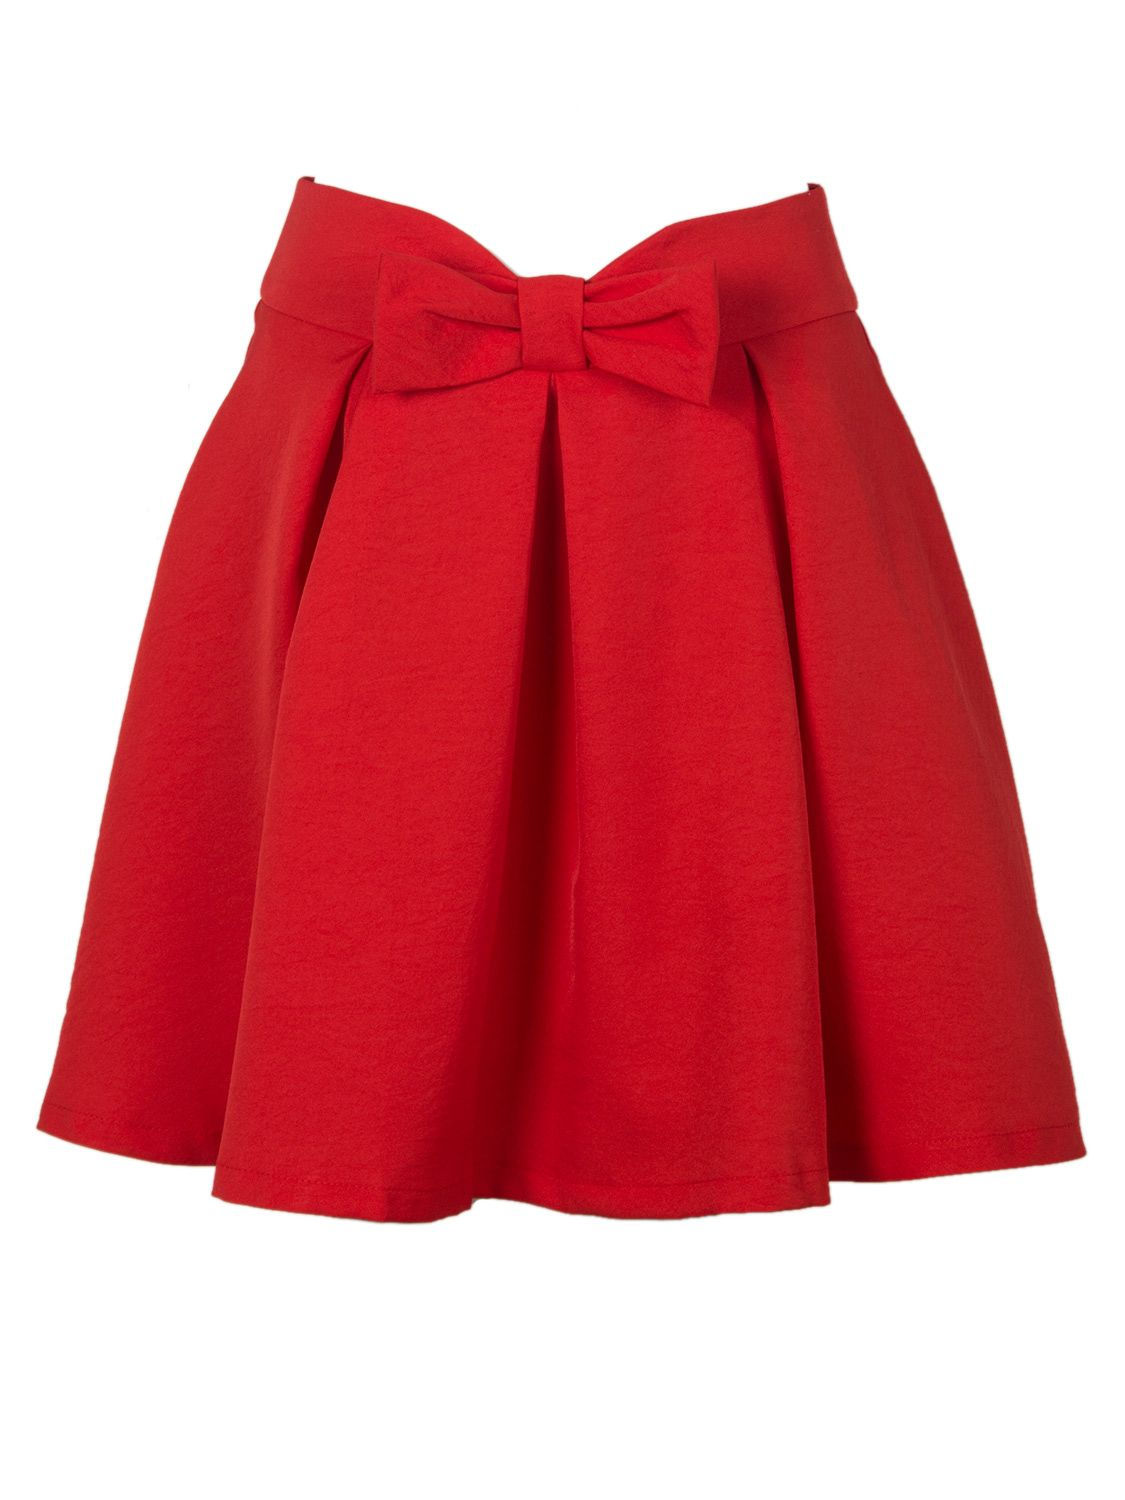 c879cb1c10 cute red bow skirt for the holidays | Clothing Envy | Red pleated ...